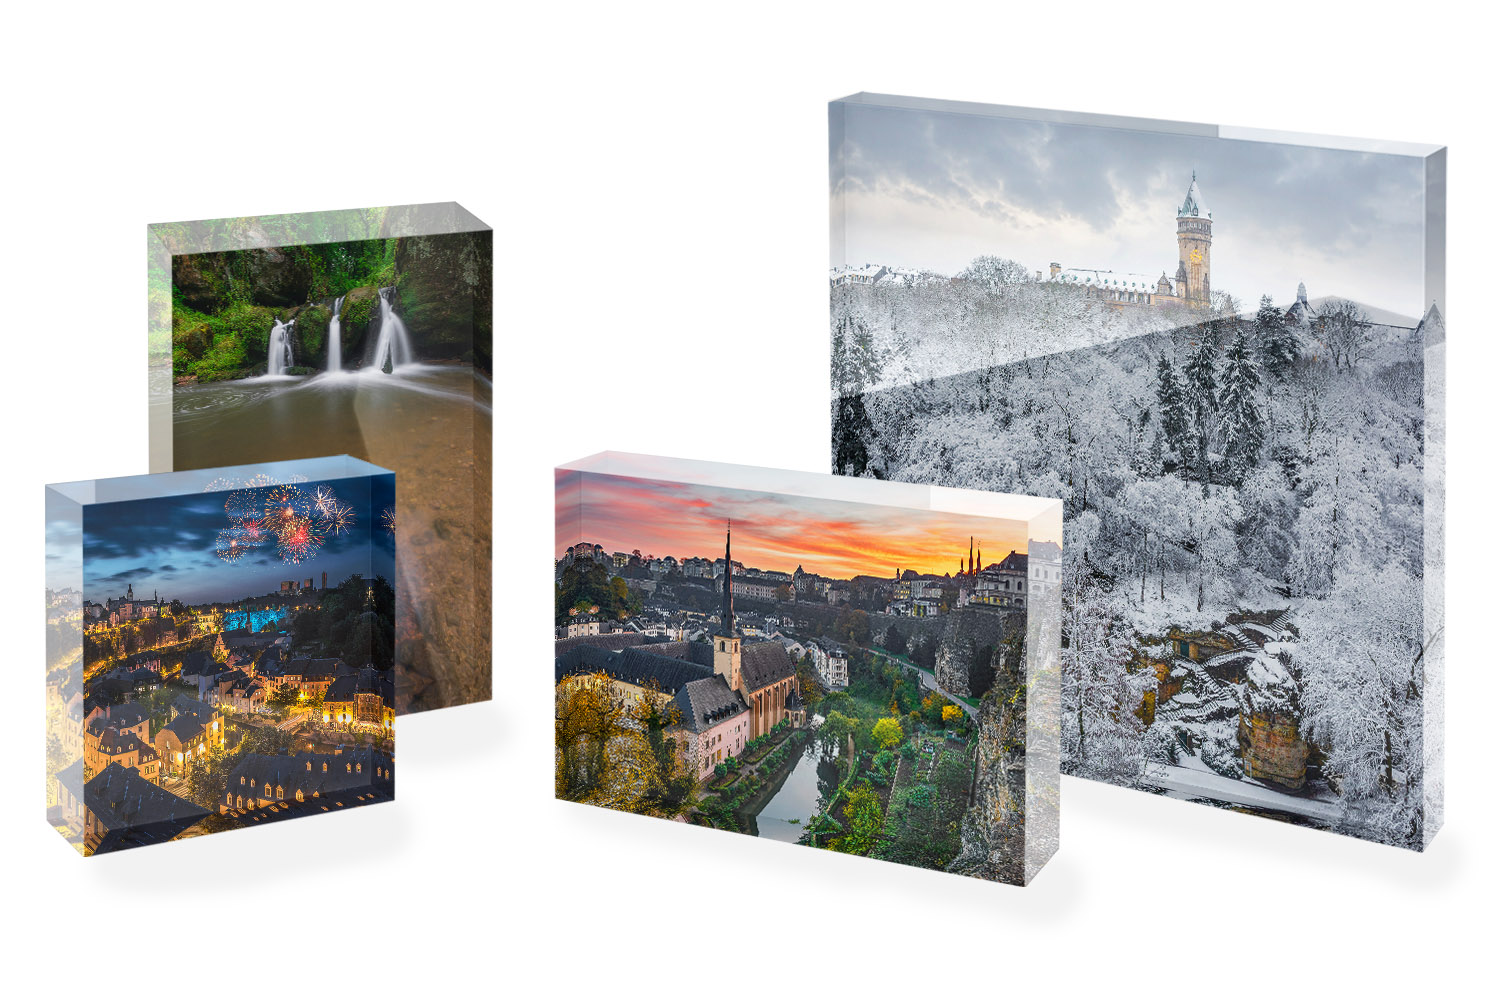 Luxembourg Acrylic Glass Block Selection - Various Sizes - Gift Souvenir Trip Travel Luxembourg - Photography by Christophe Van Biesen - Luxembourg Landscape and Travel Photographer